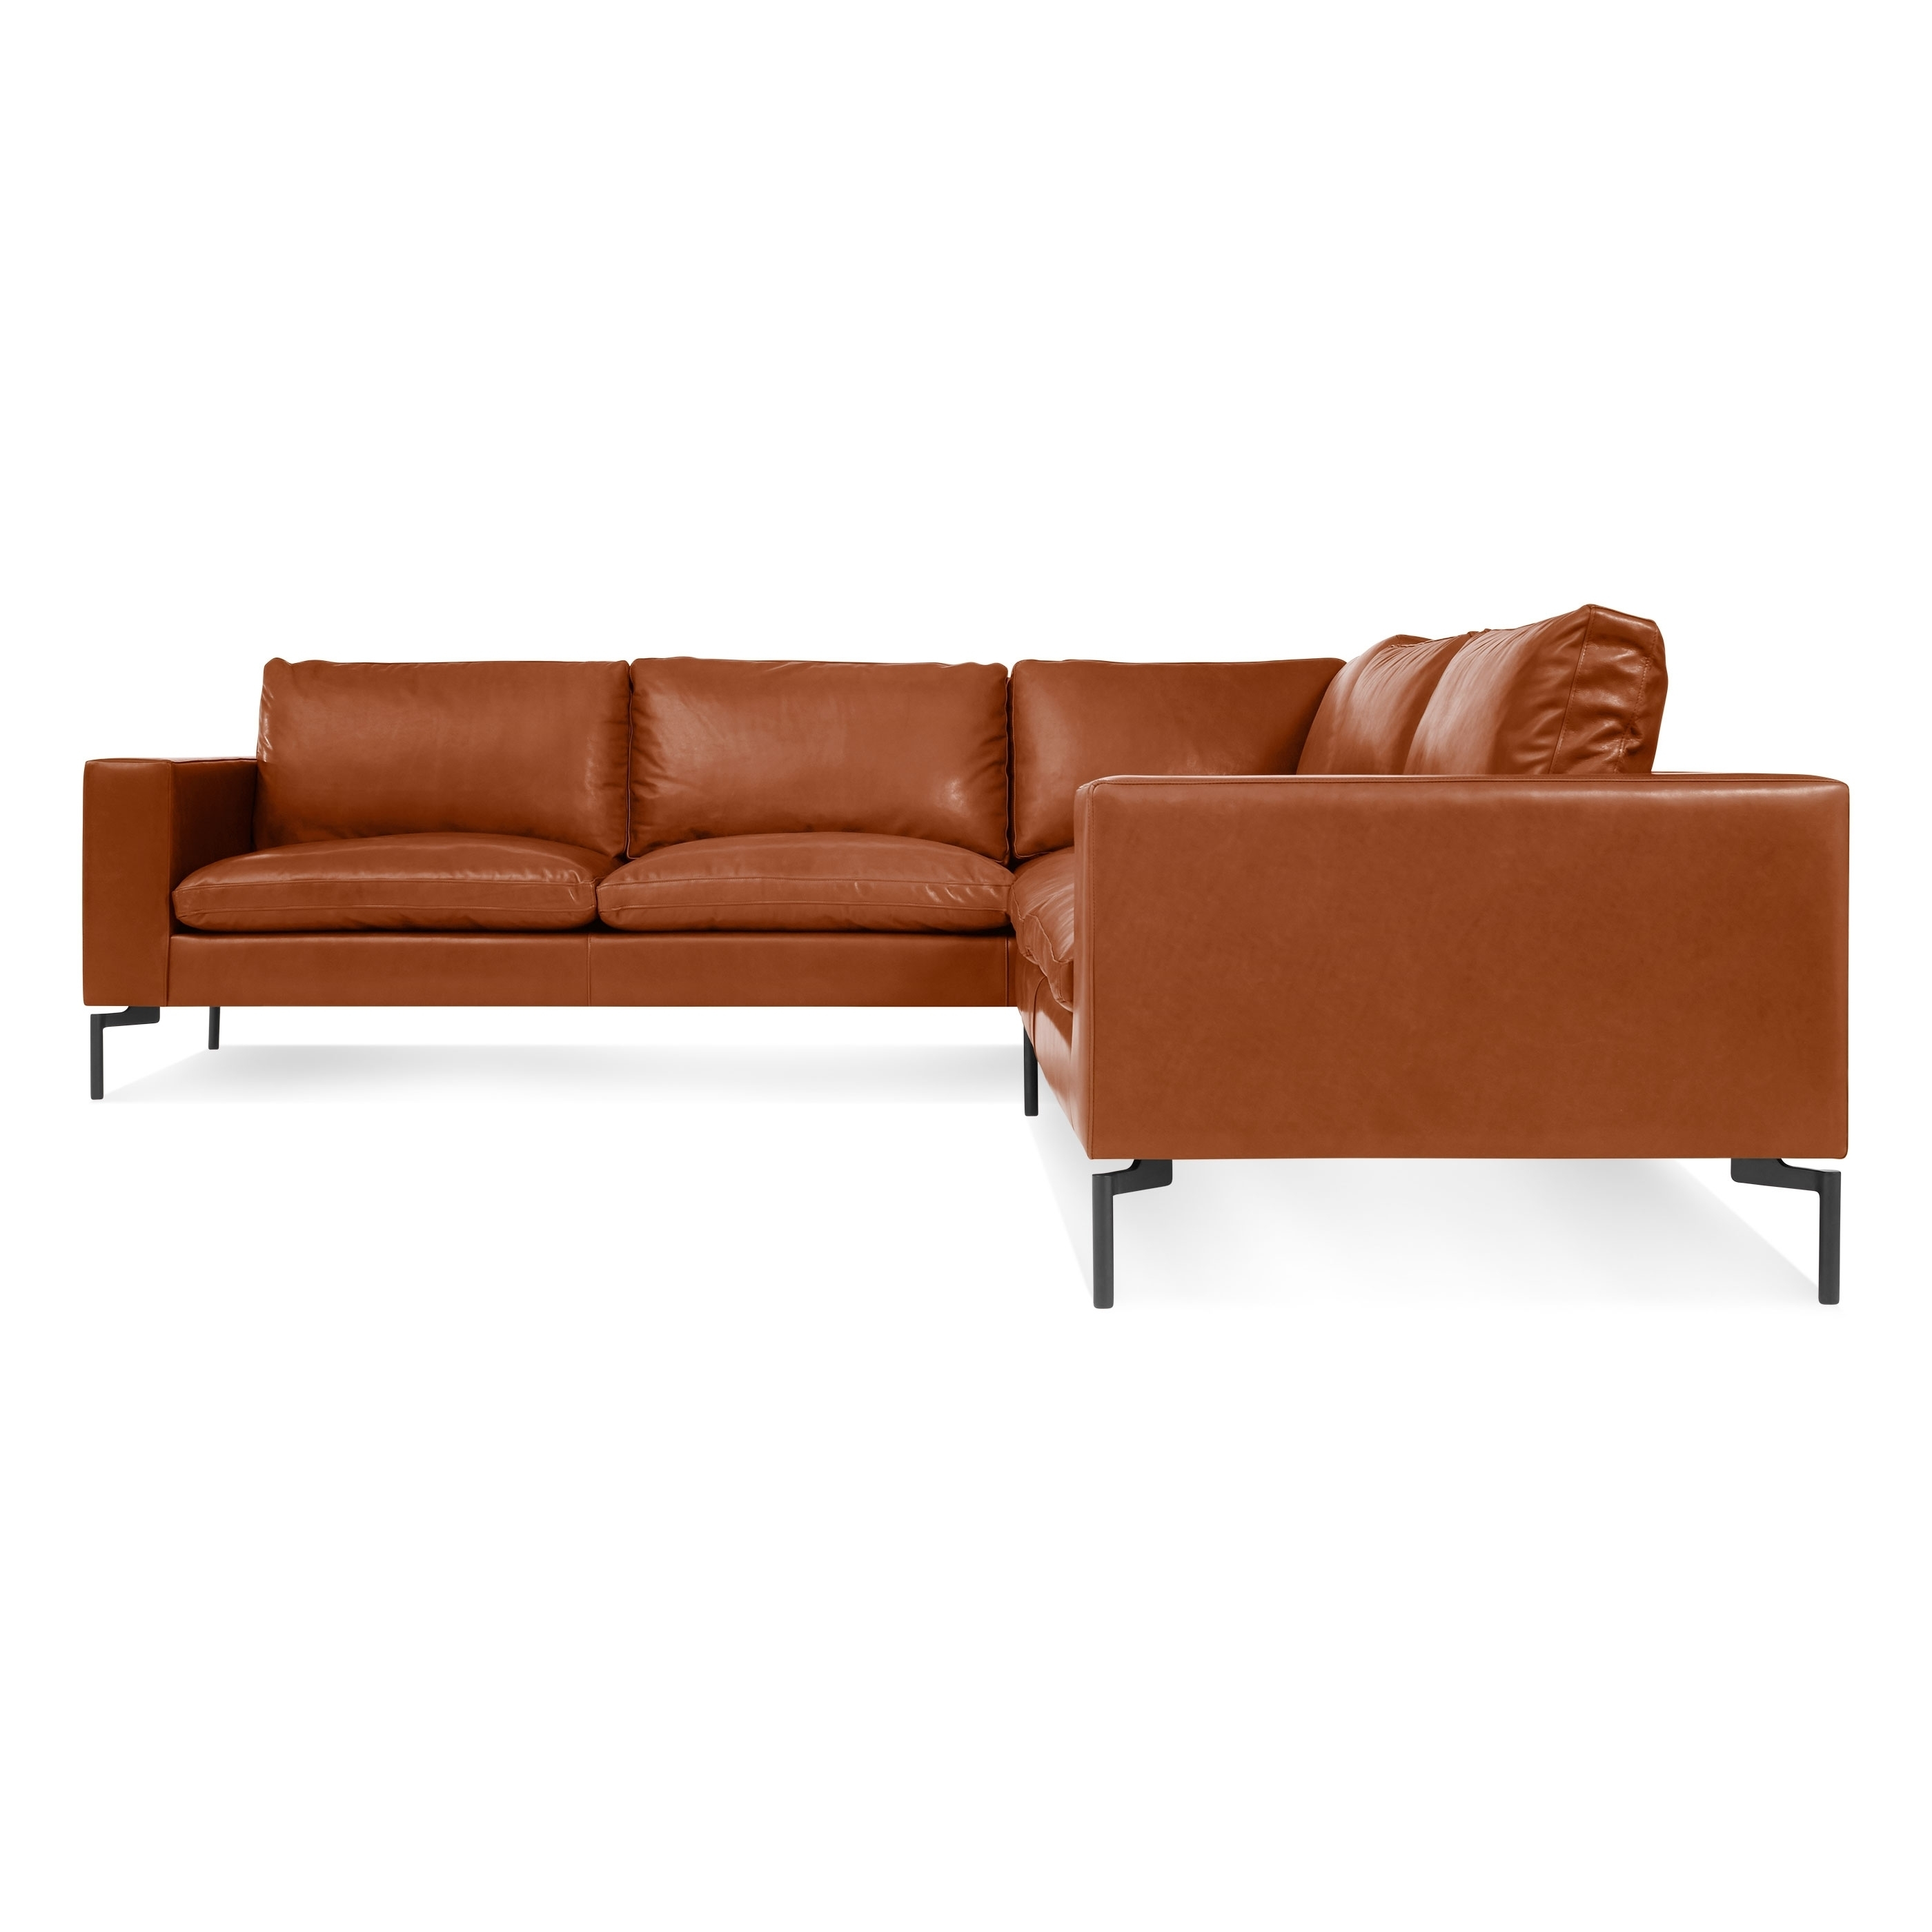 20 Best Collection Of Newfoundland Sectional Sofas With Regard To Newfoundland Sectional Sofas (View 6 of 10)